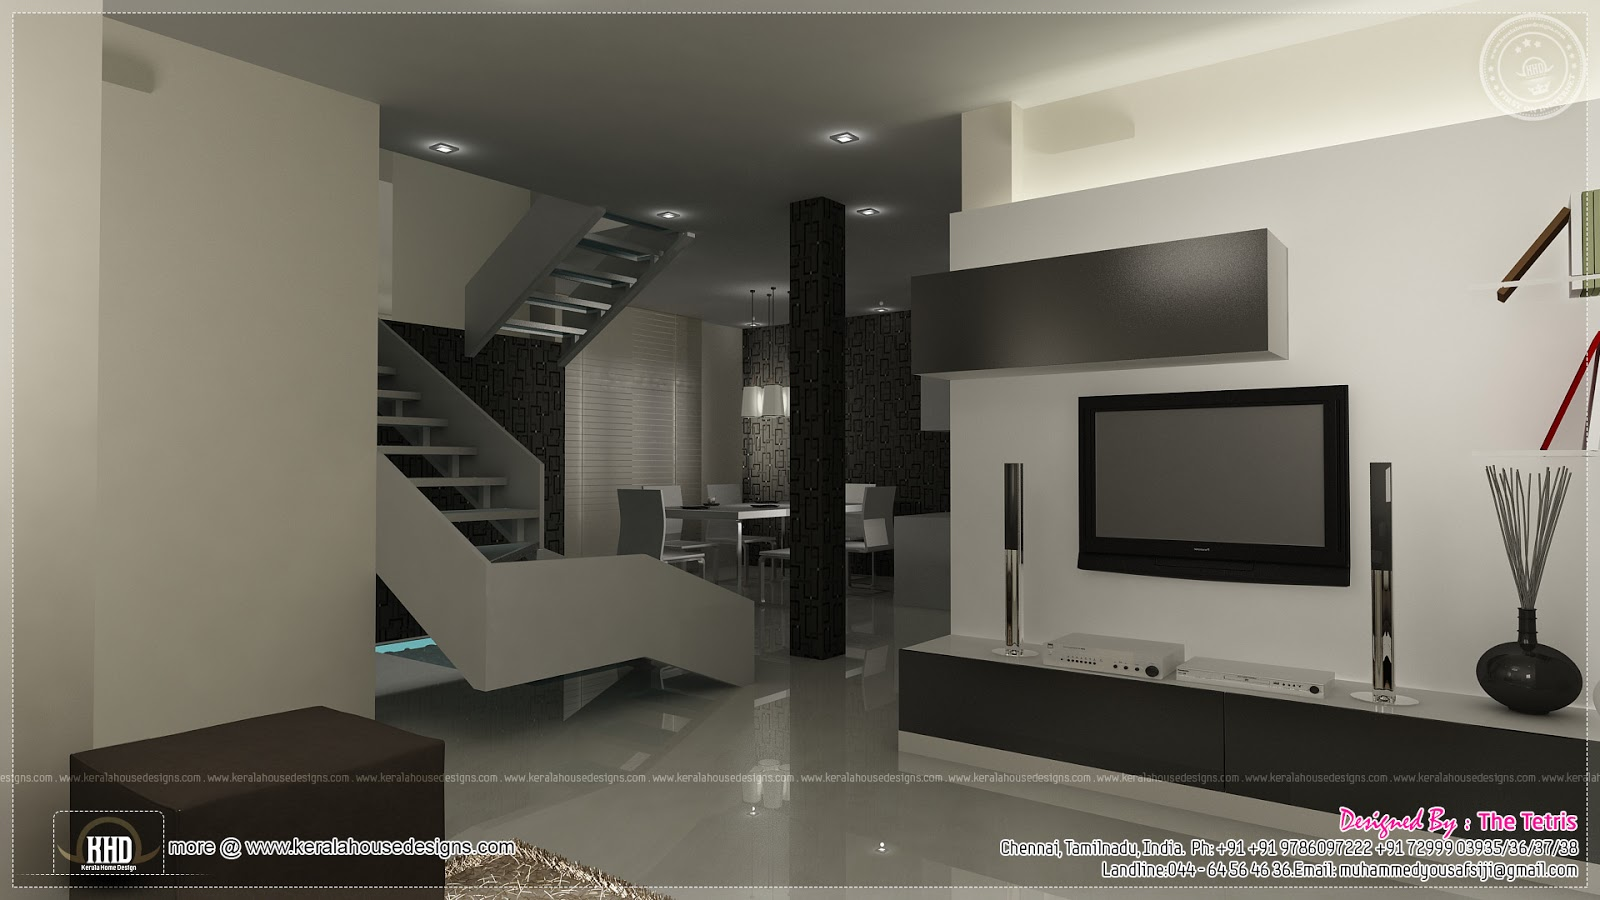 Interior design renderings by tetris architects chennai House architecture chennai